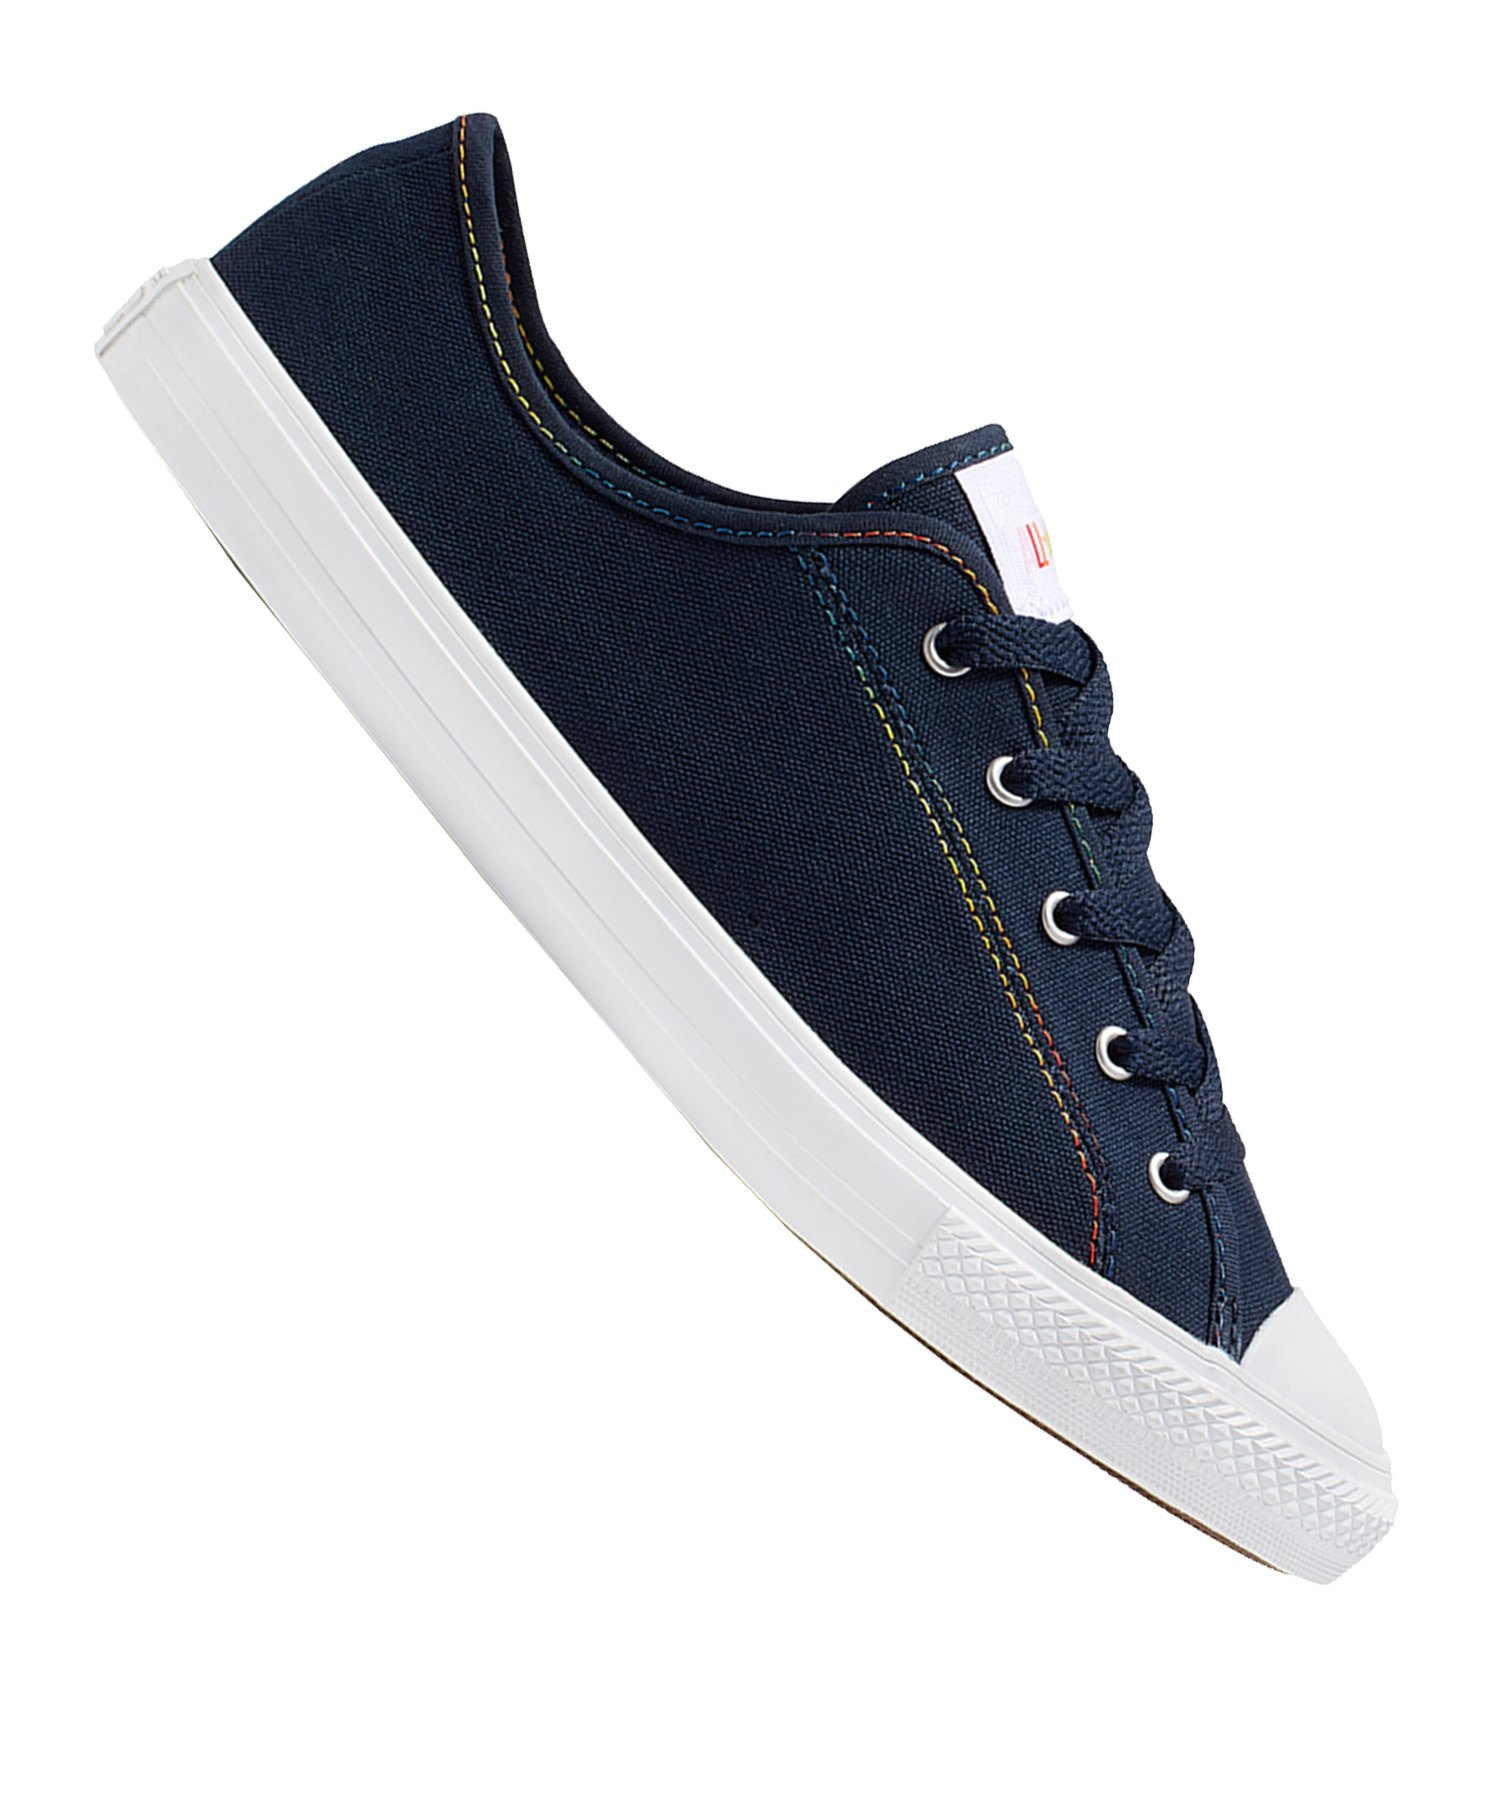 Converse CT AS Dainty OX Damen Sneaker Blau F467